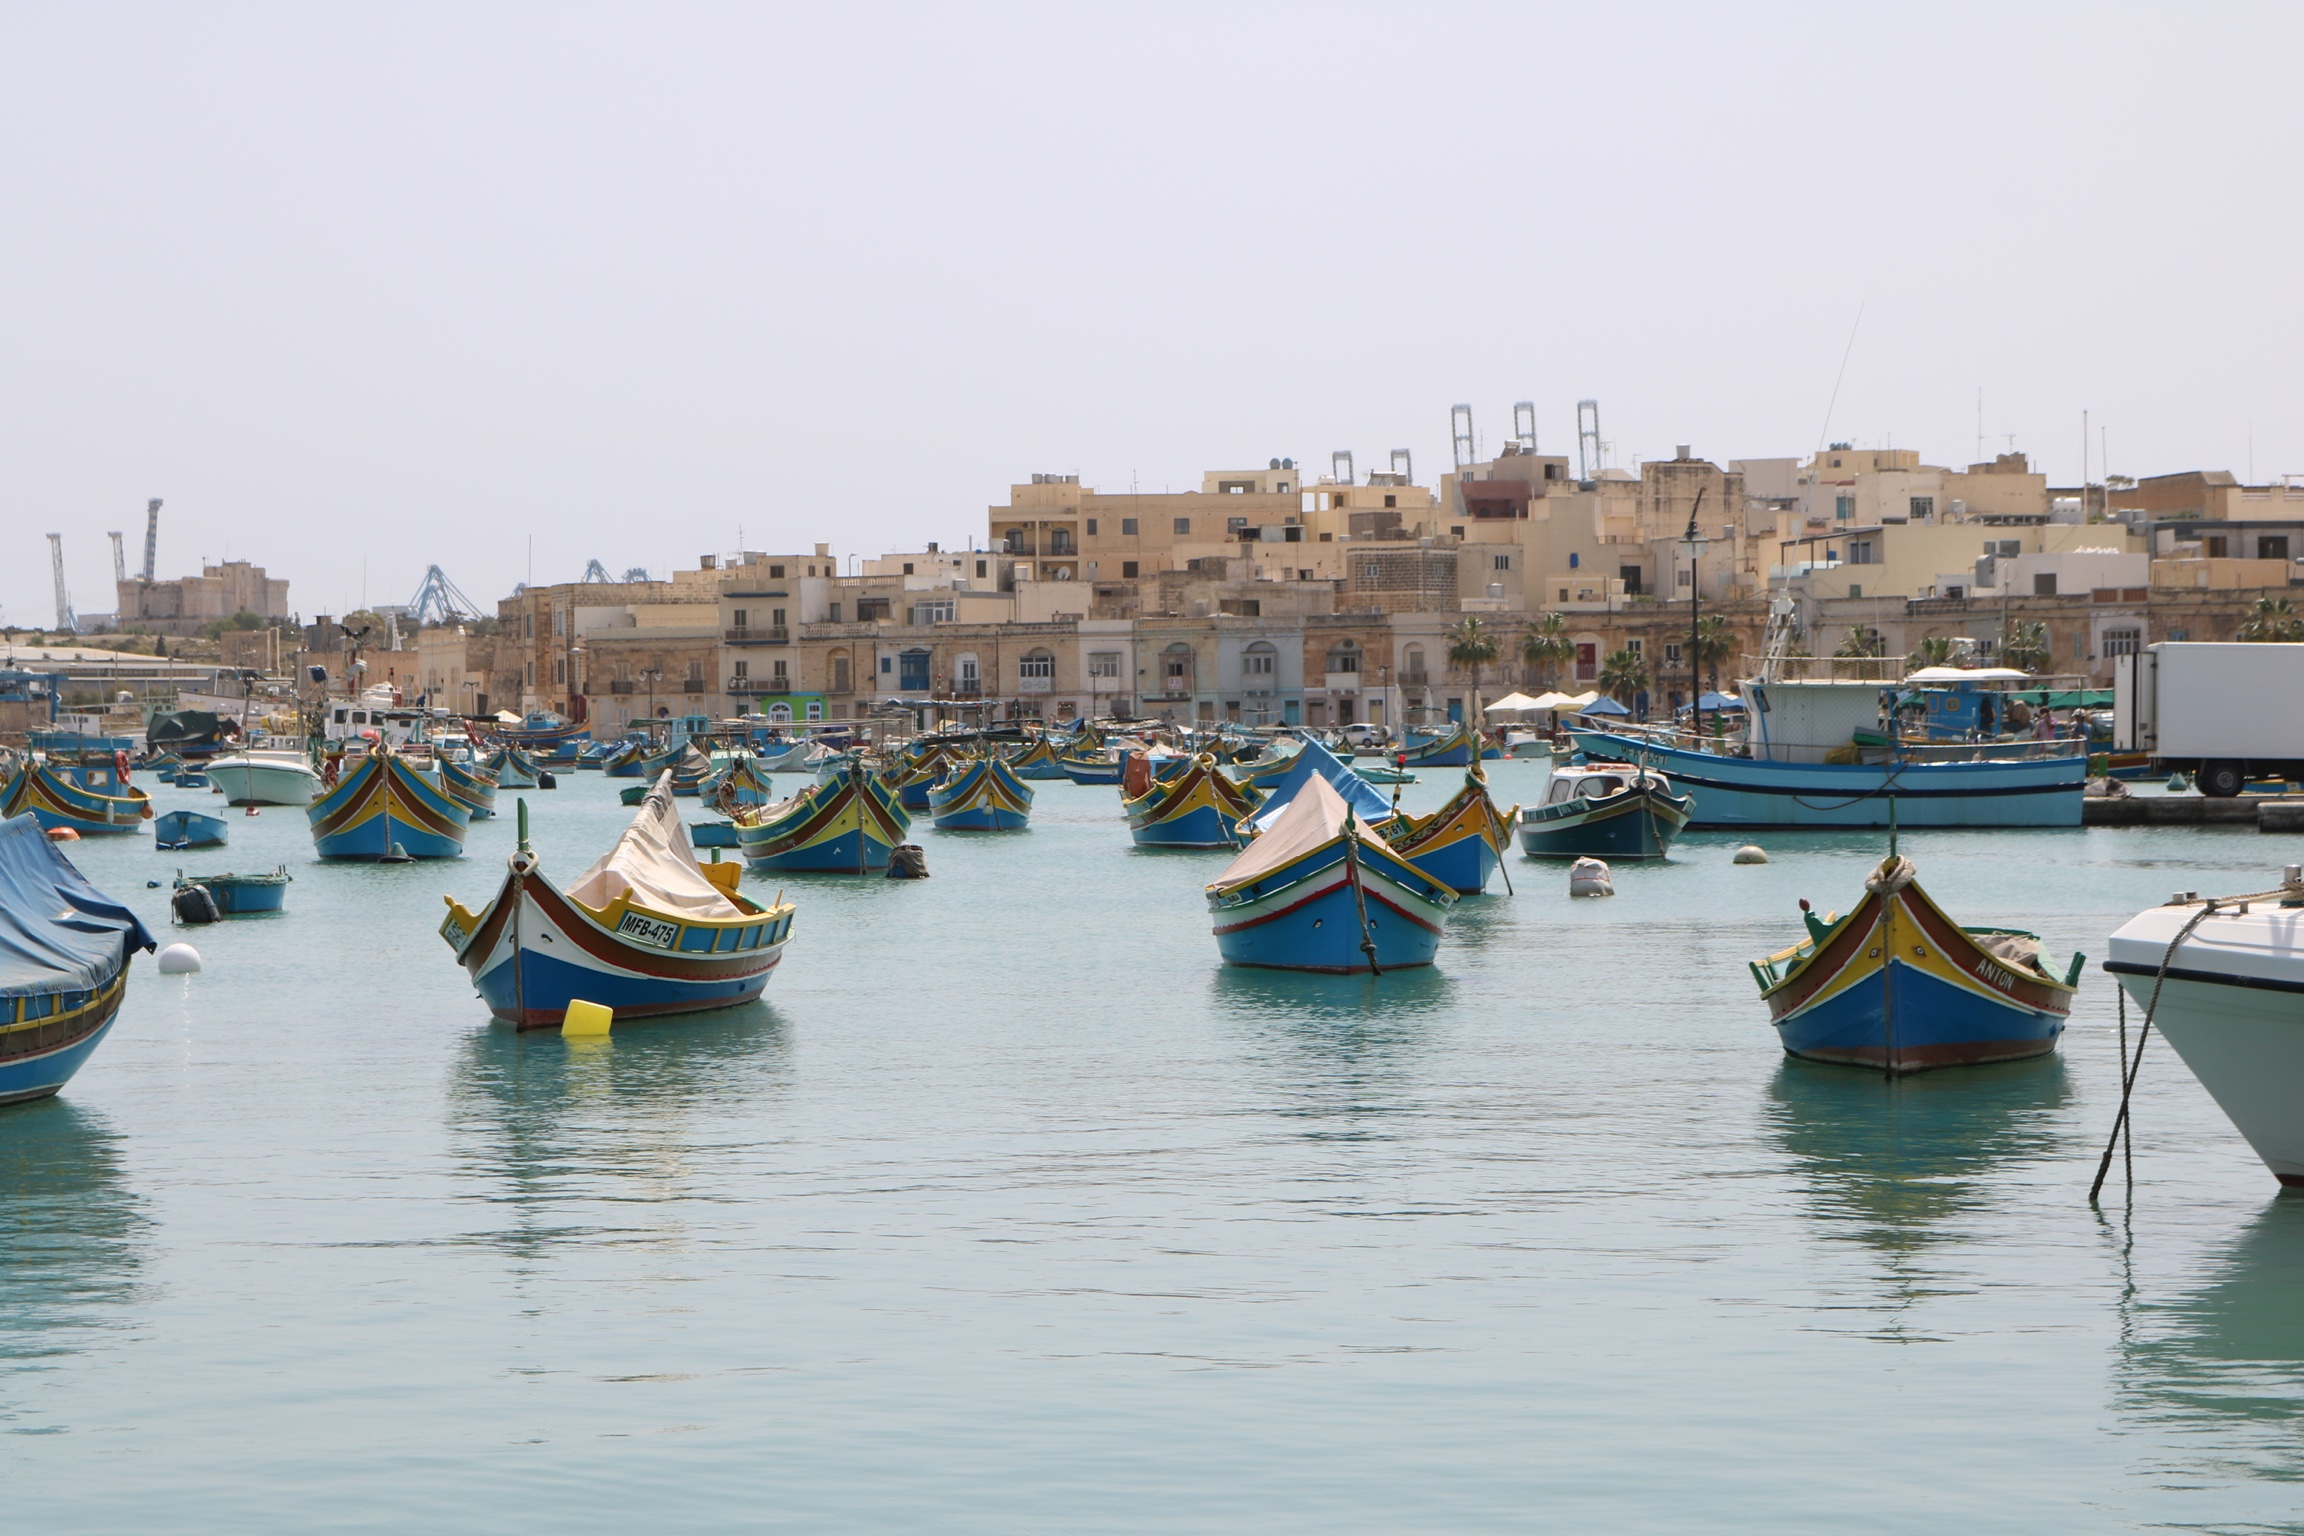 Malta - Fishing Village